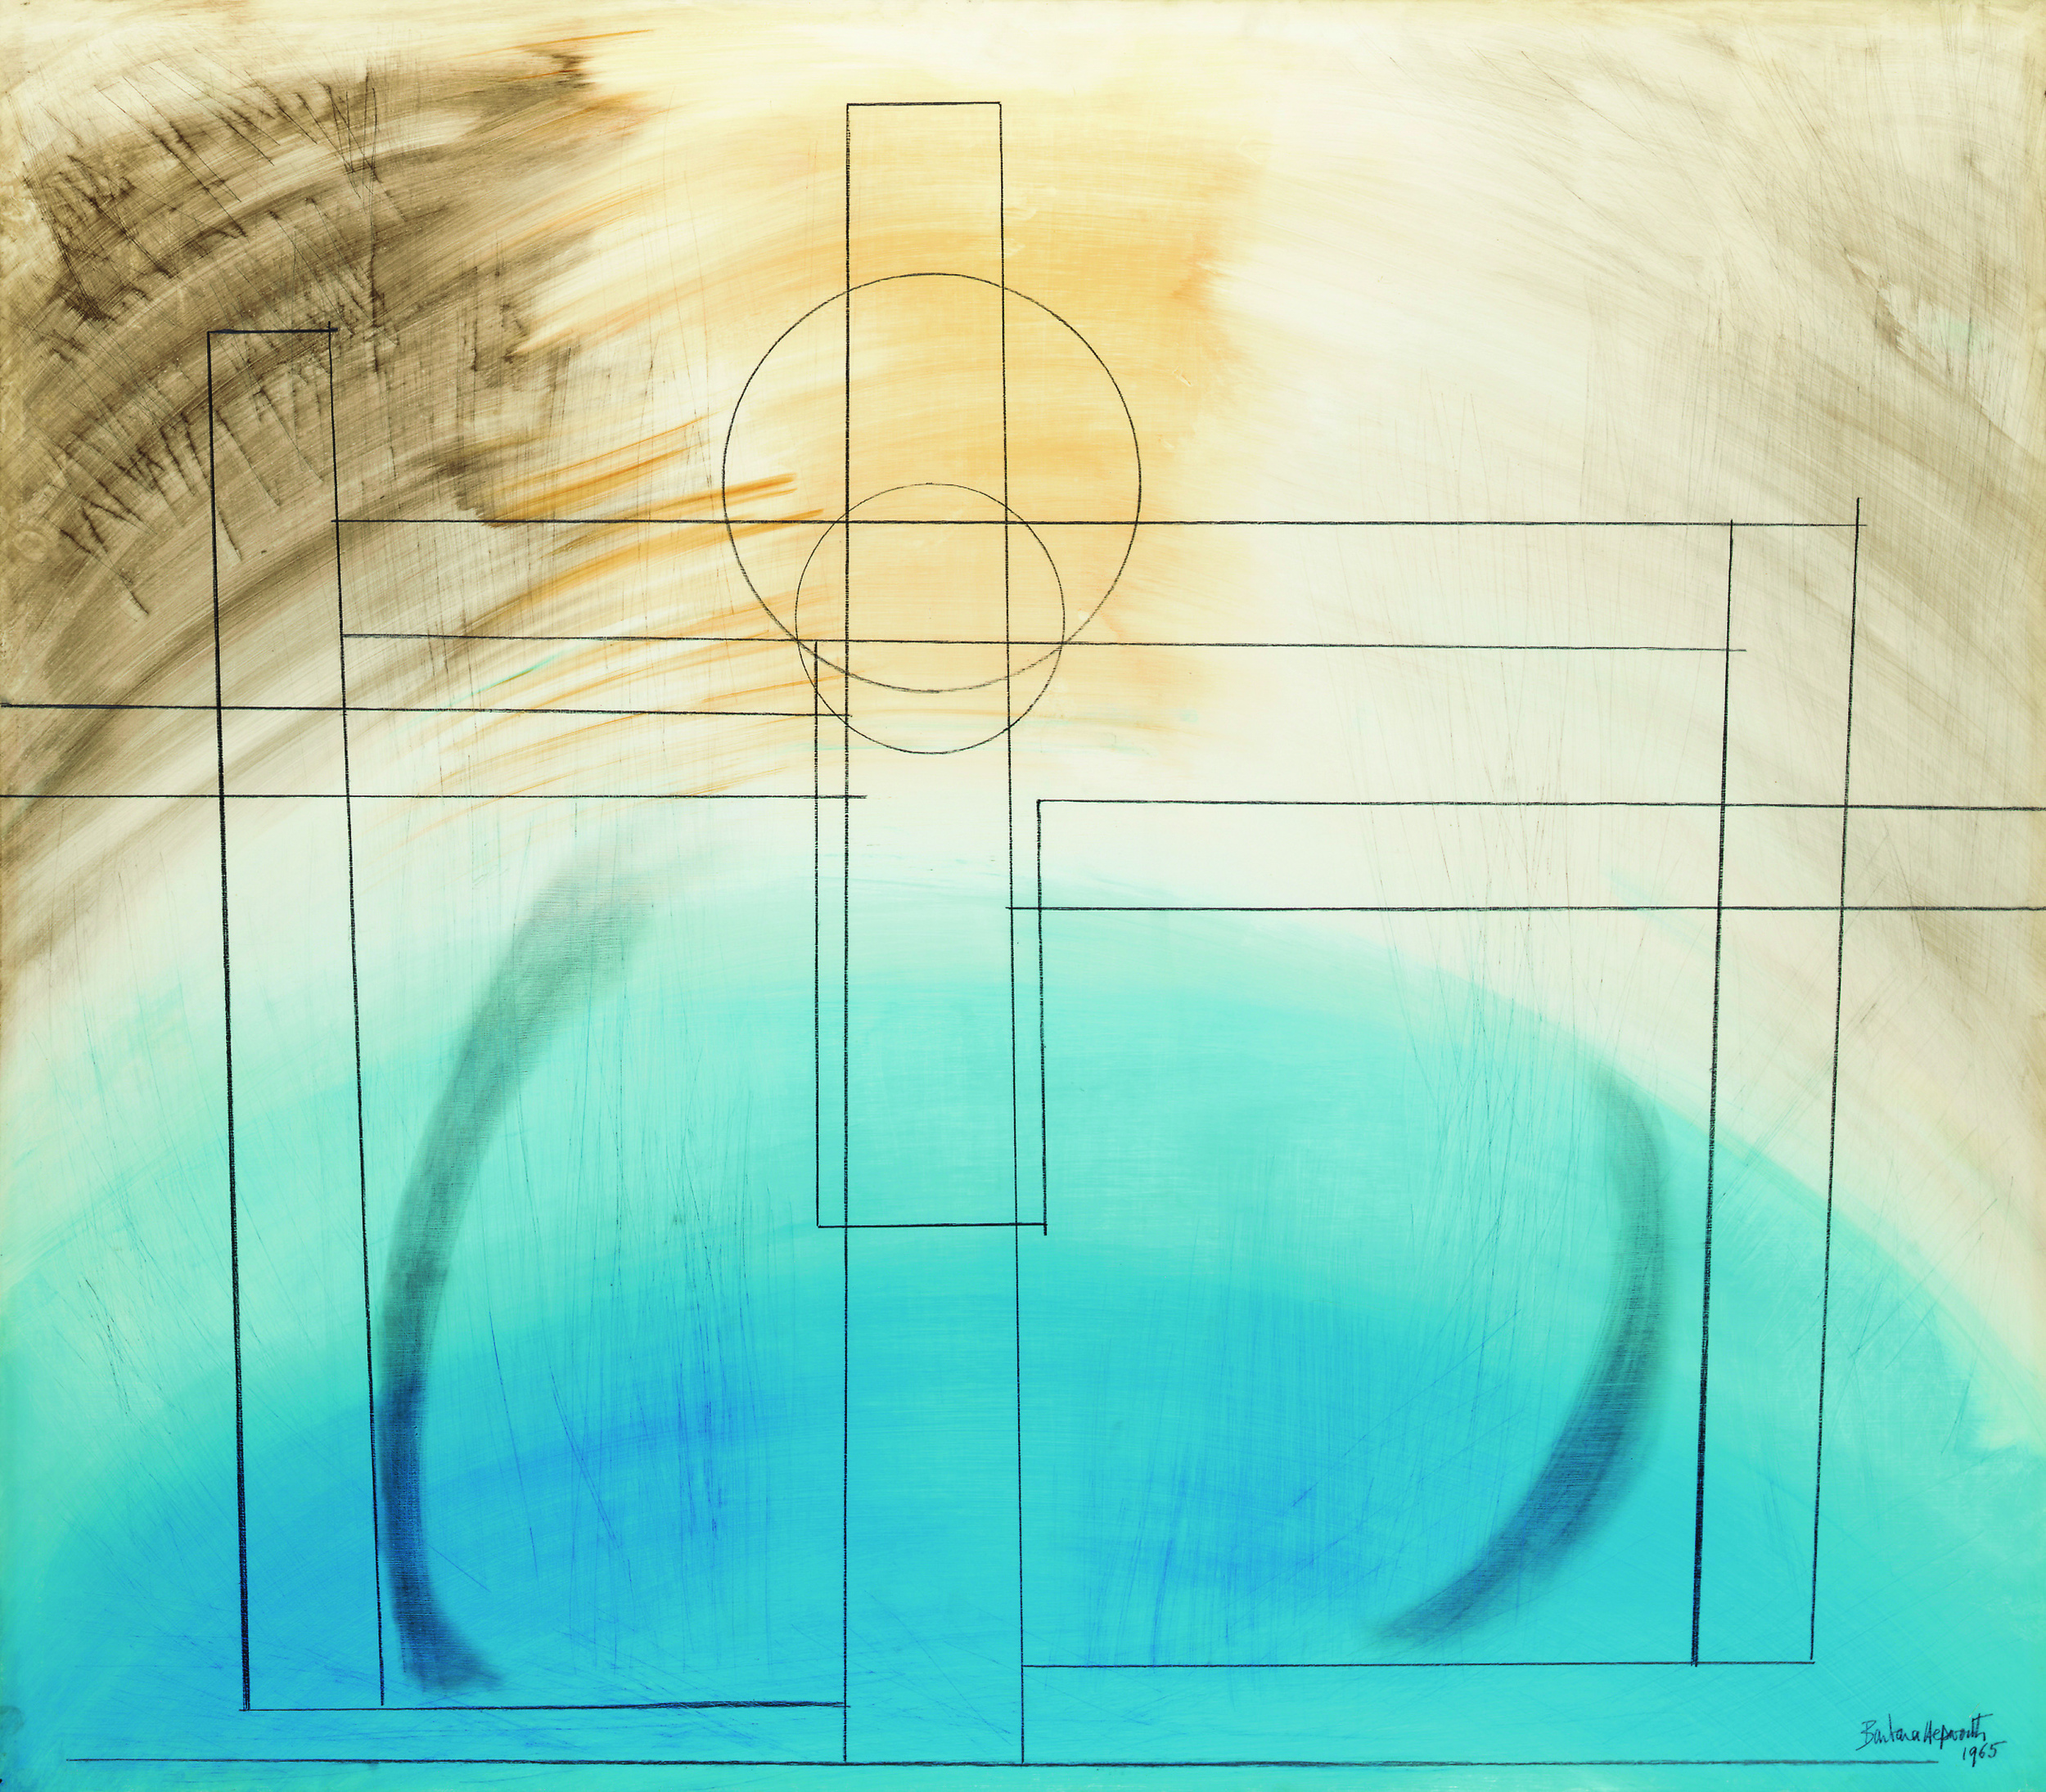 Barbara Hepworth, Construction I, 1965